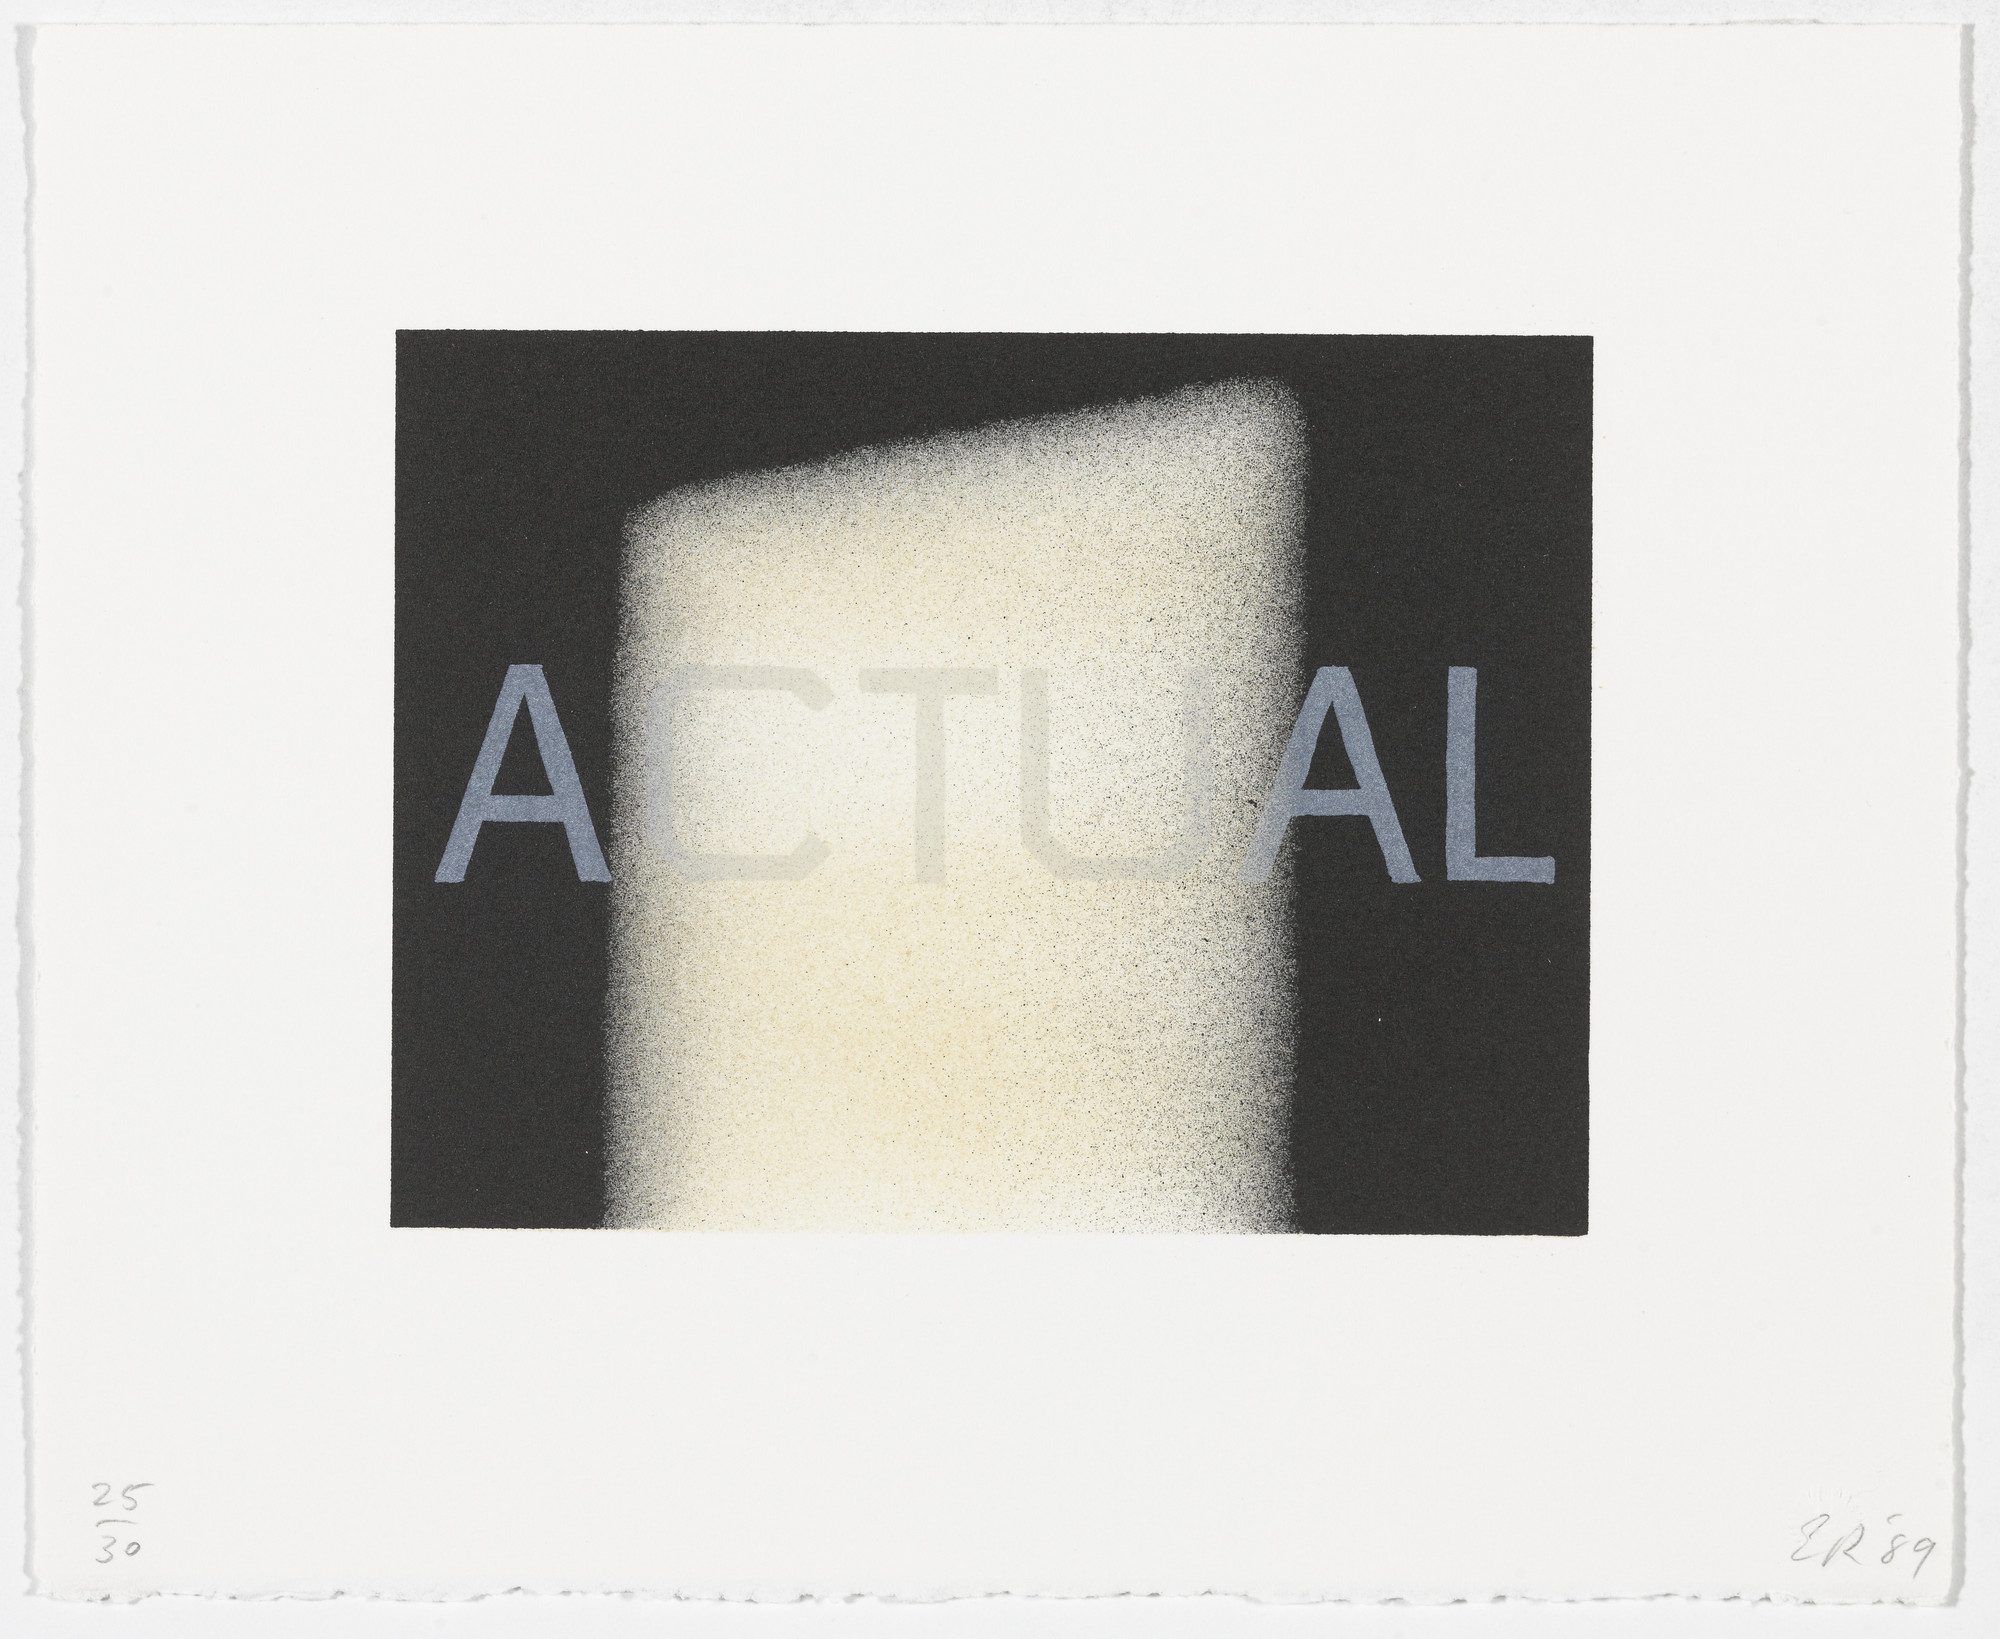 Edward Ruscha. Actual from That Is Right And Other Similarities. 1989